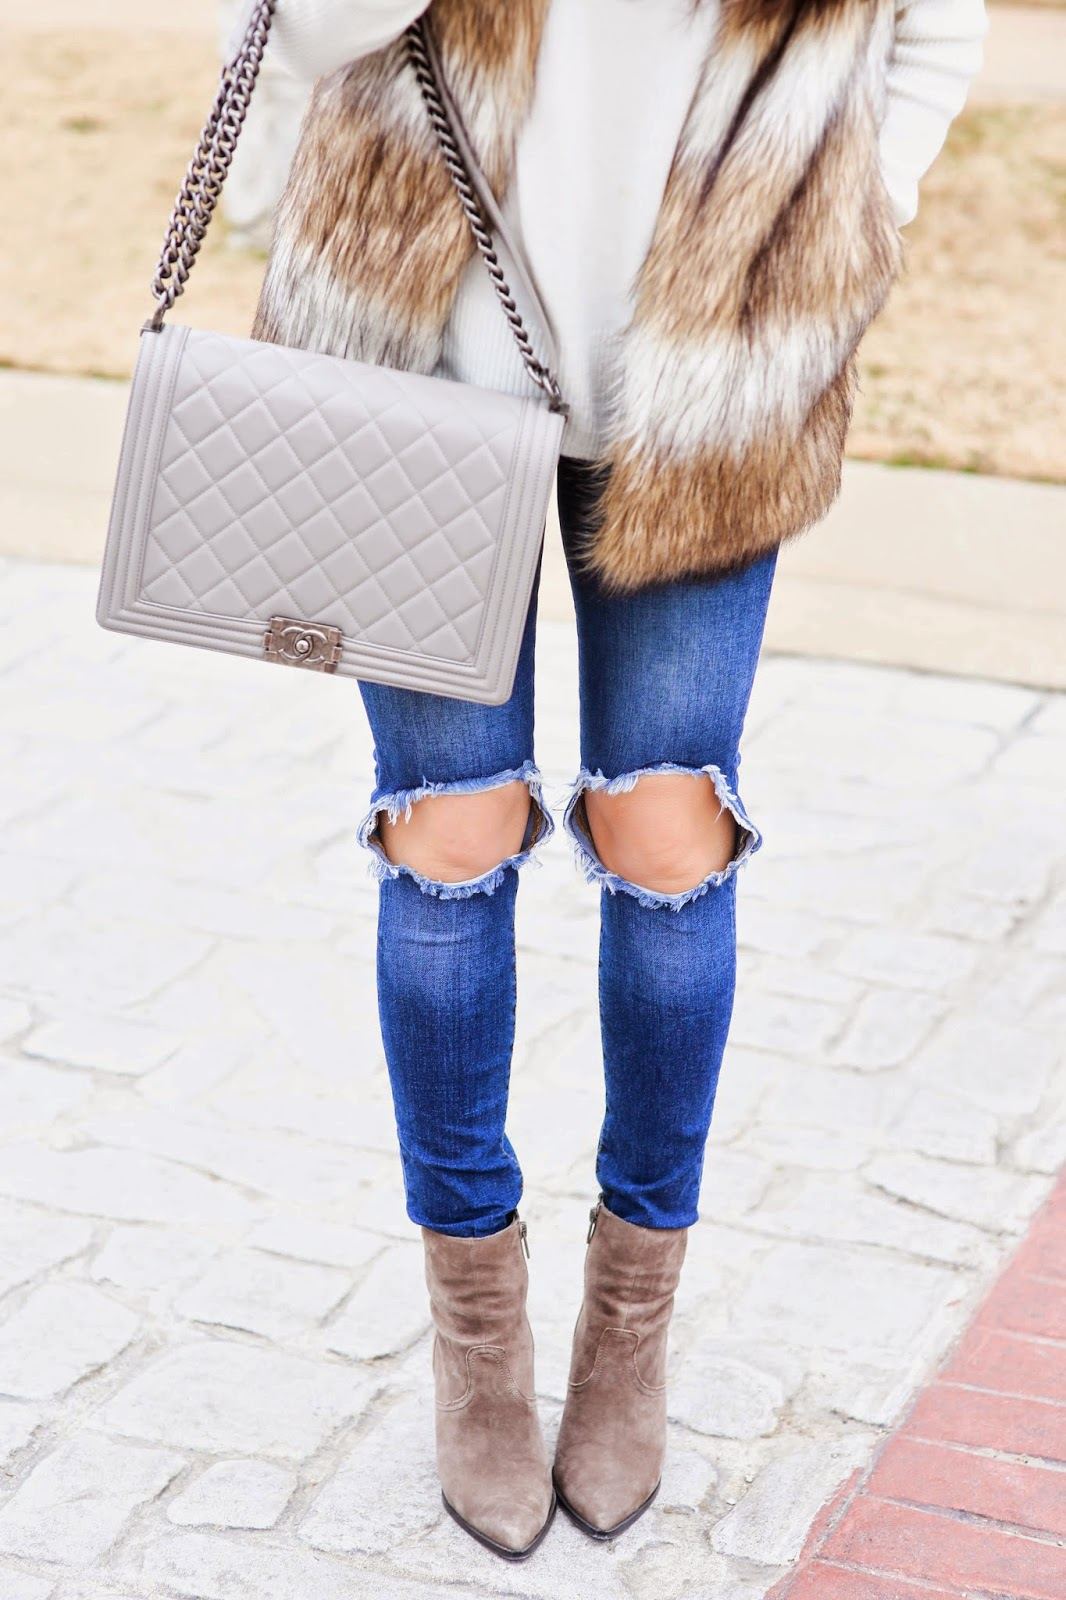 faux fur vest, chic wish fur vest, ripped jeans, knee ripped jeans, grey chanel boy bag, the courtey bibb, bauble bar courtney bib with pearls, emily gemma, cream v neck sweater, michael hors runway watch in gold, david yurman black onyx ring, david yurman ring, ash jasmine booties